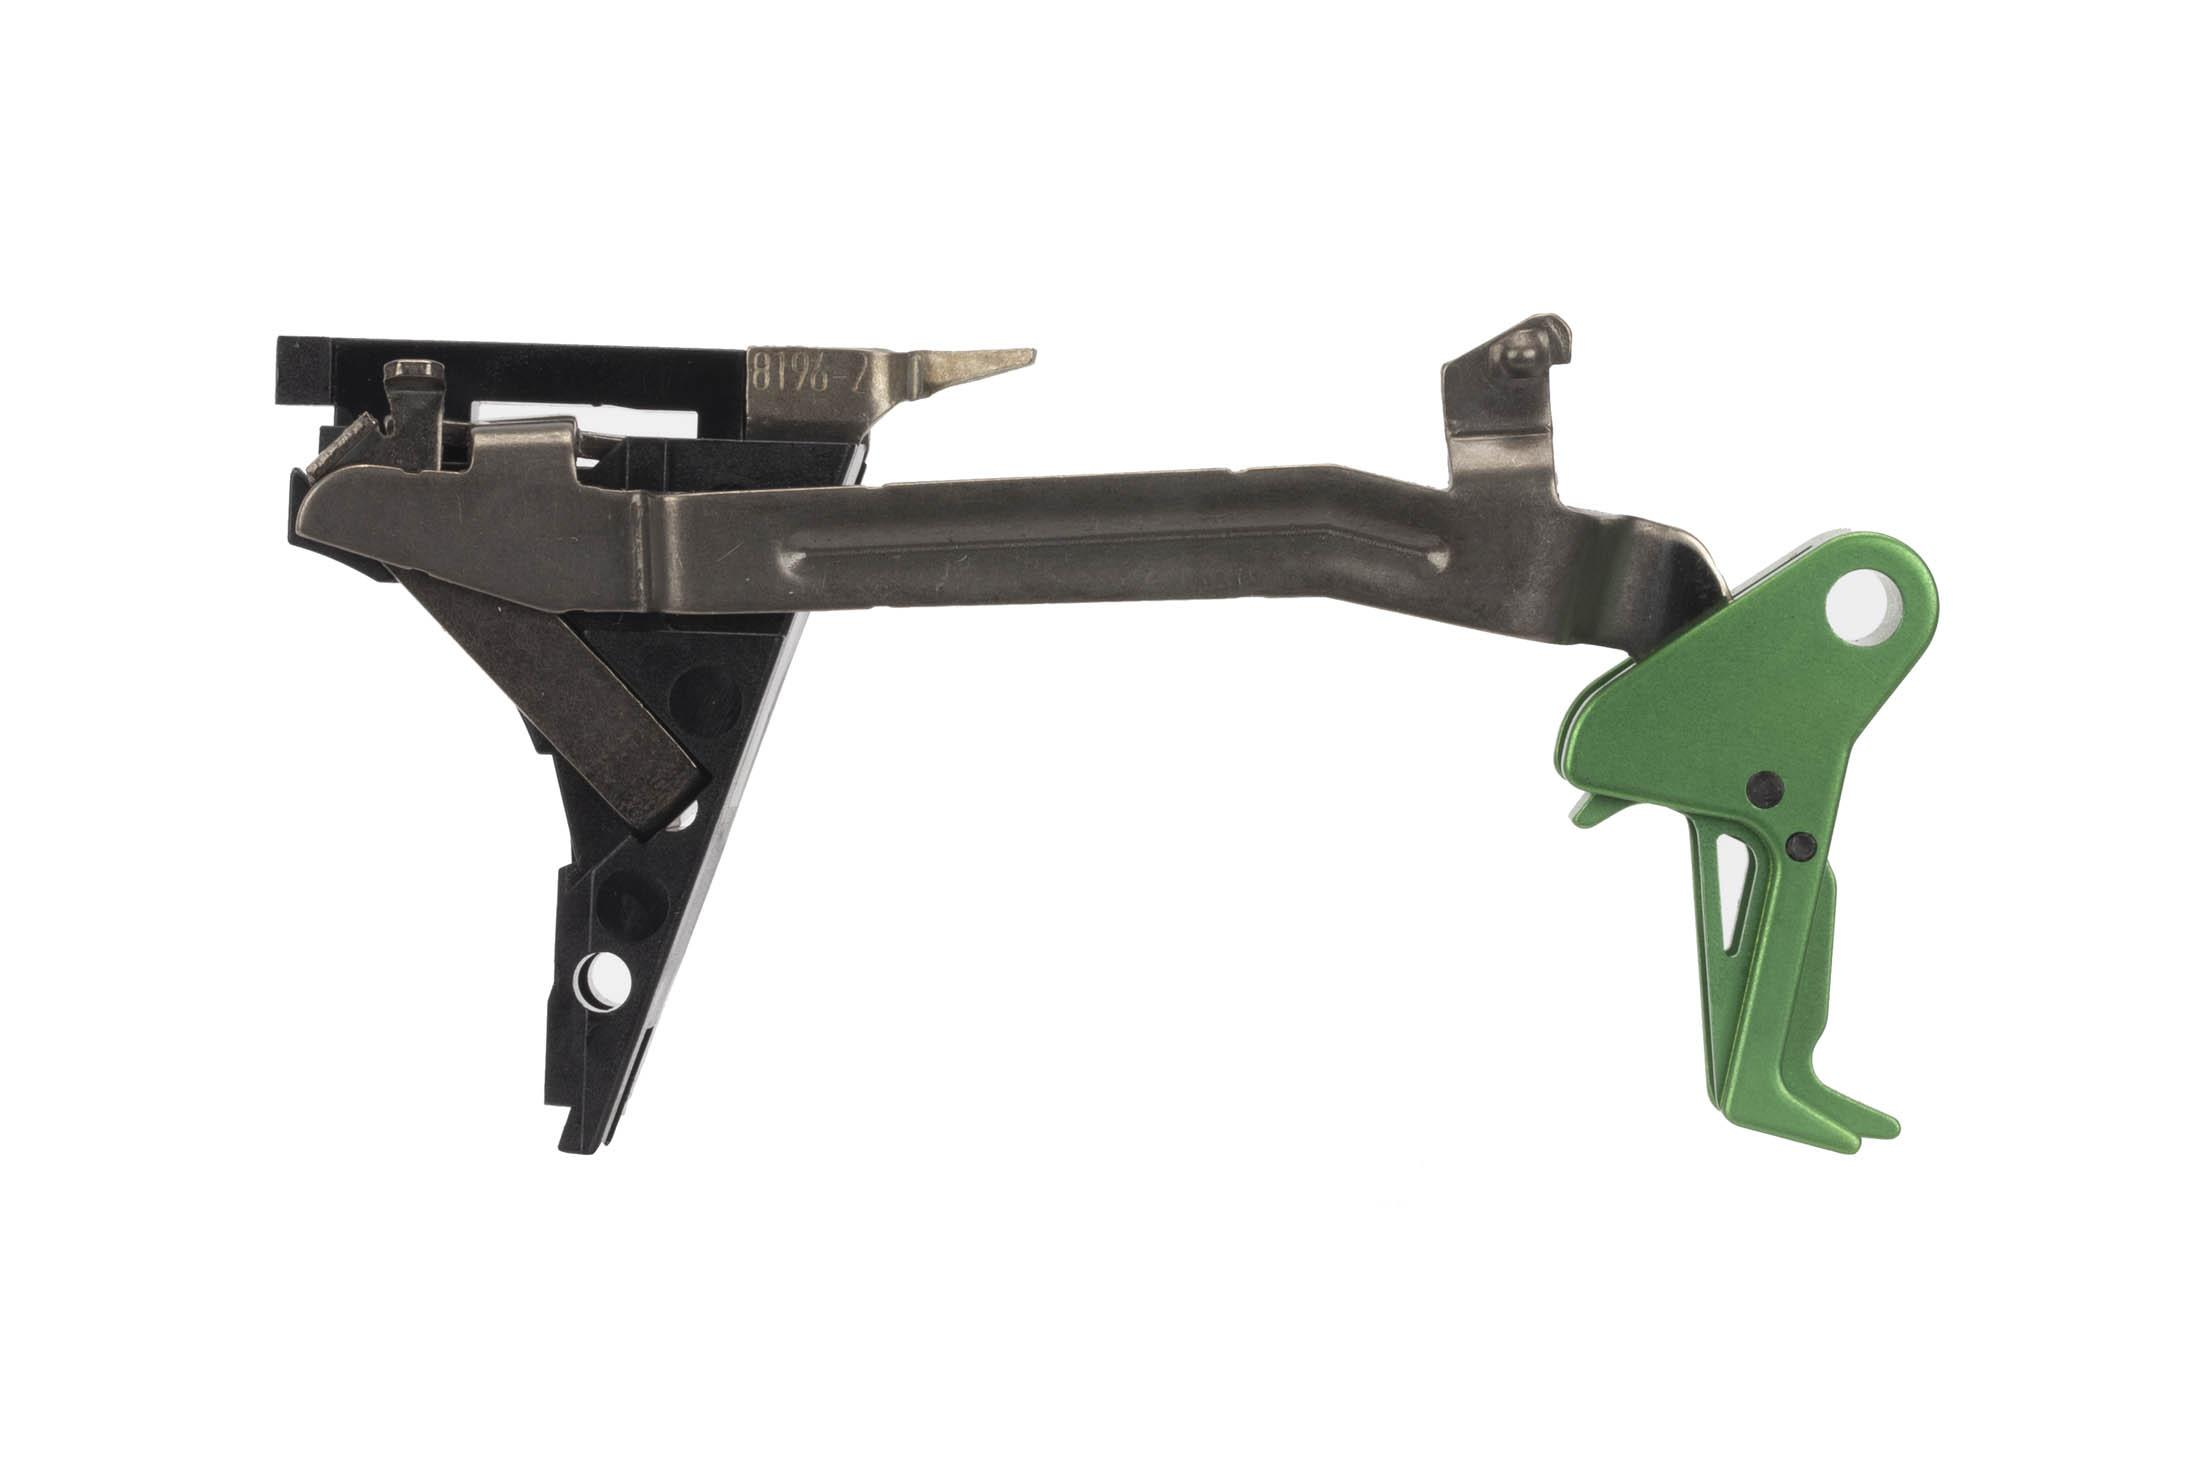 CMC Triggers Drop-In Glock Gen 1-3 .45 ACP trigger features a flat bow for enhanced feel and an eye-catching green trigger.